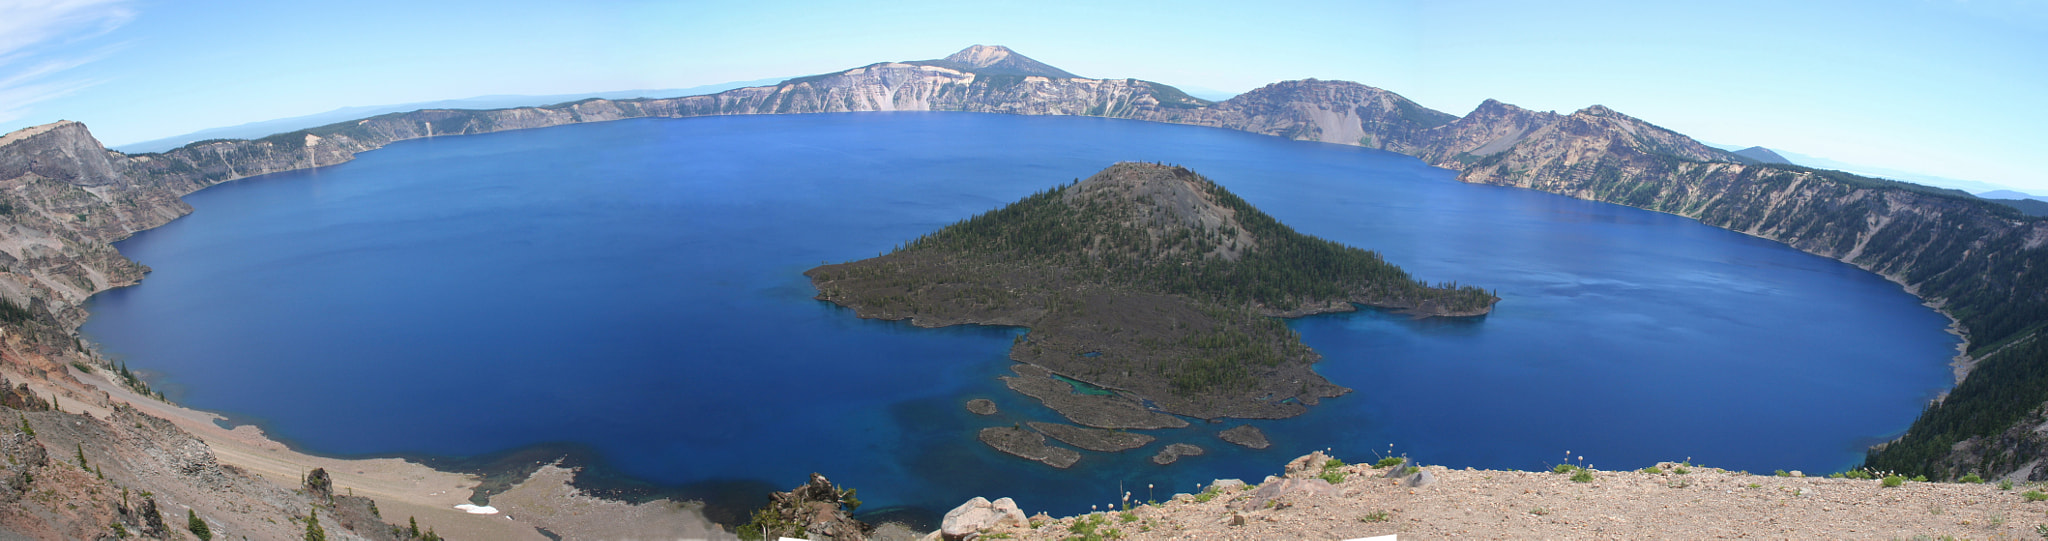 Photograph Crater Lake - Wizard Island by Omer Livne on 500px